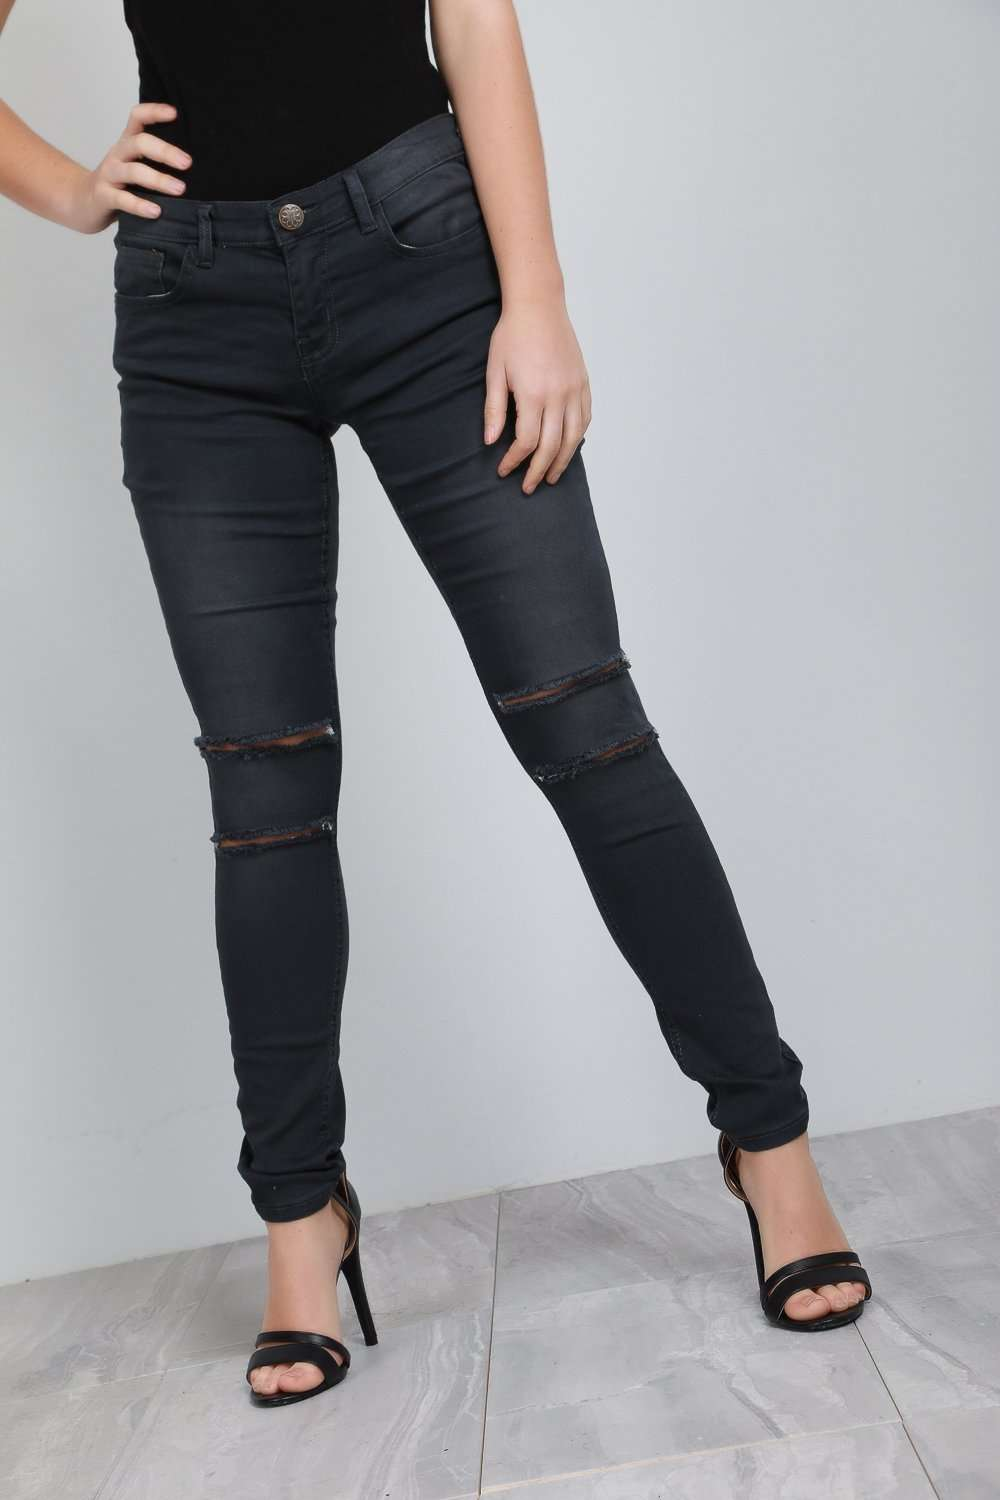 Viana Charcoal Ripped Knee Denim Skinny Jeans - bejealous-com